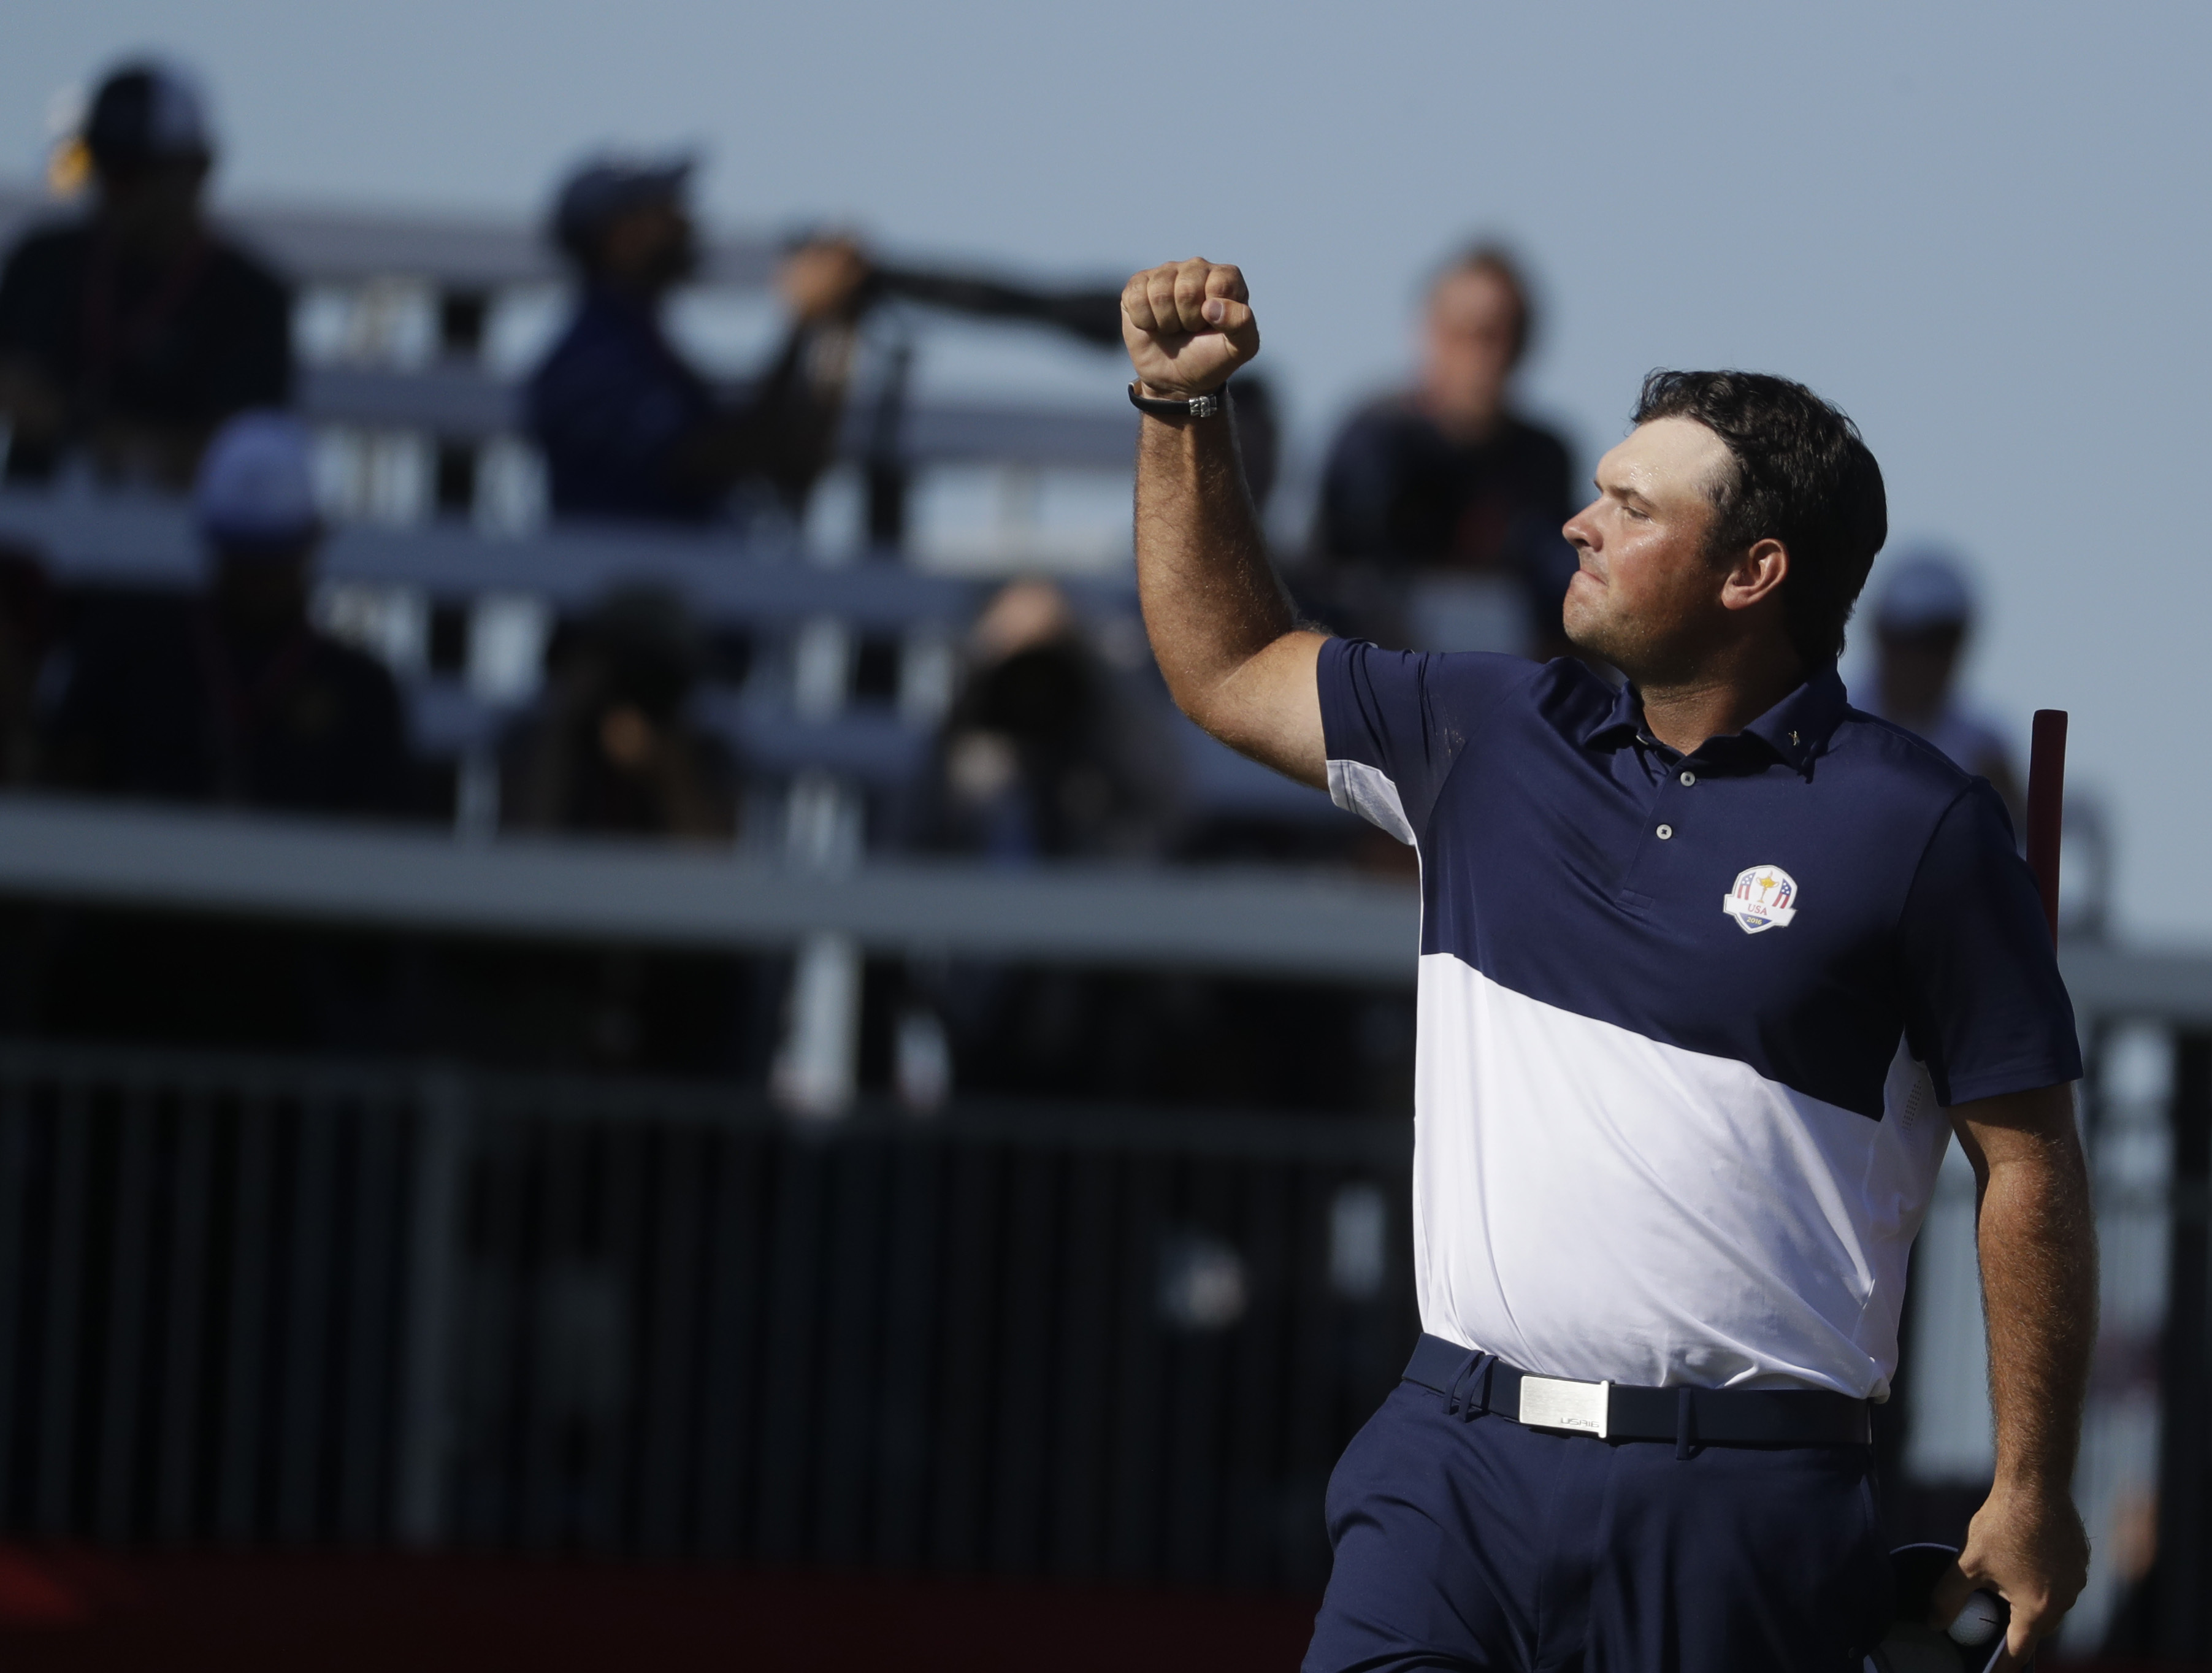 United States Patrick Reed reacts after defeating Europes Rory McIlroy on the 18th hole during a singles match at the Ryder Cup golf tournament Sunday, Oct. 2, 2016, at Hazeltine National Golf Club in Chaska, Minn. (AP Photo/Chris Carlson)